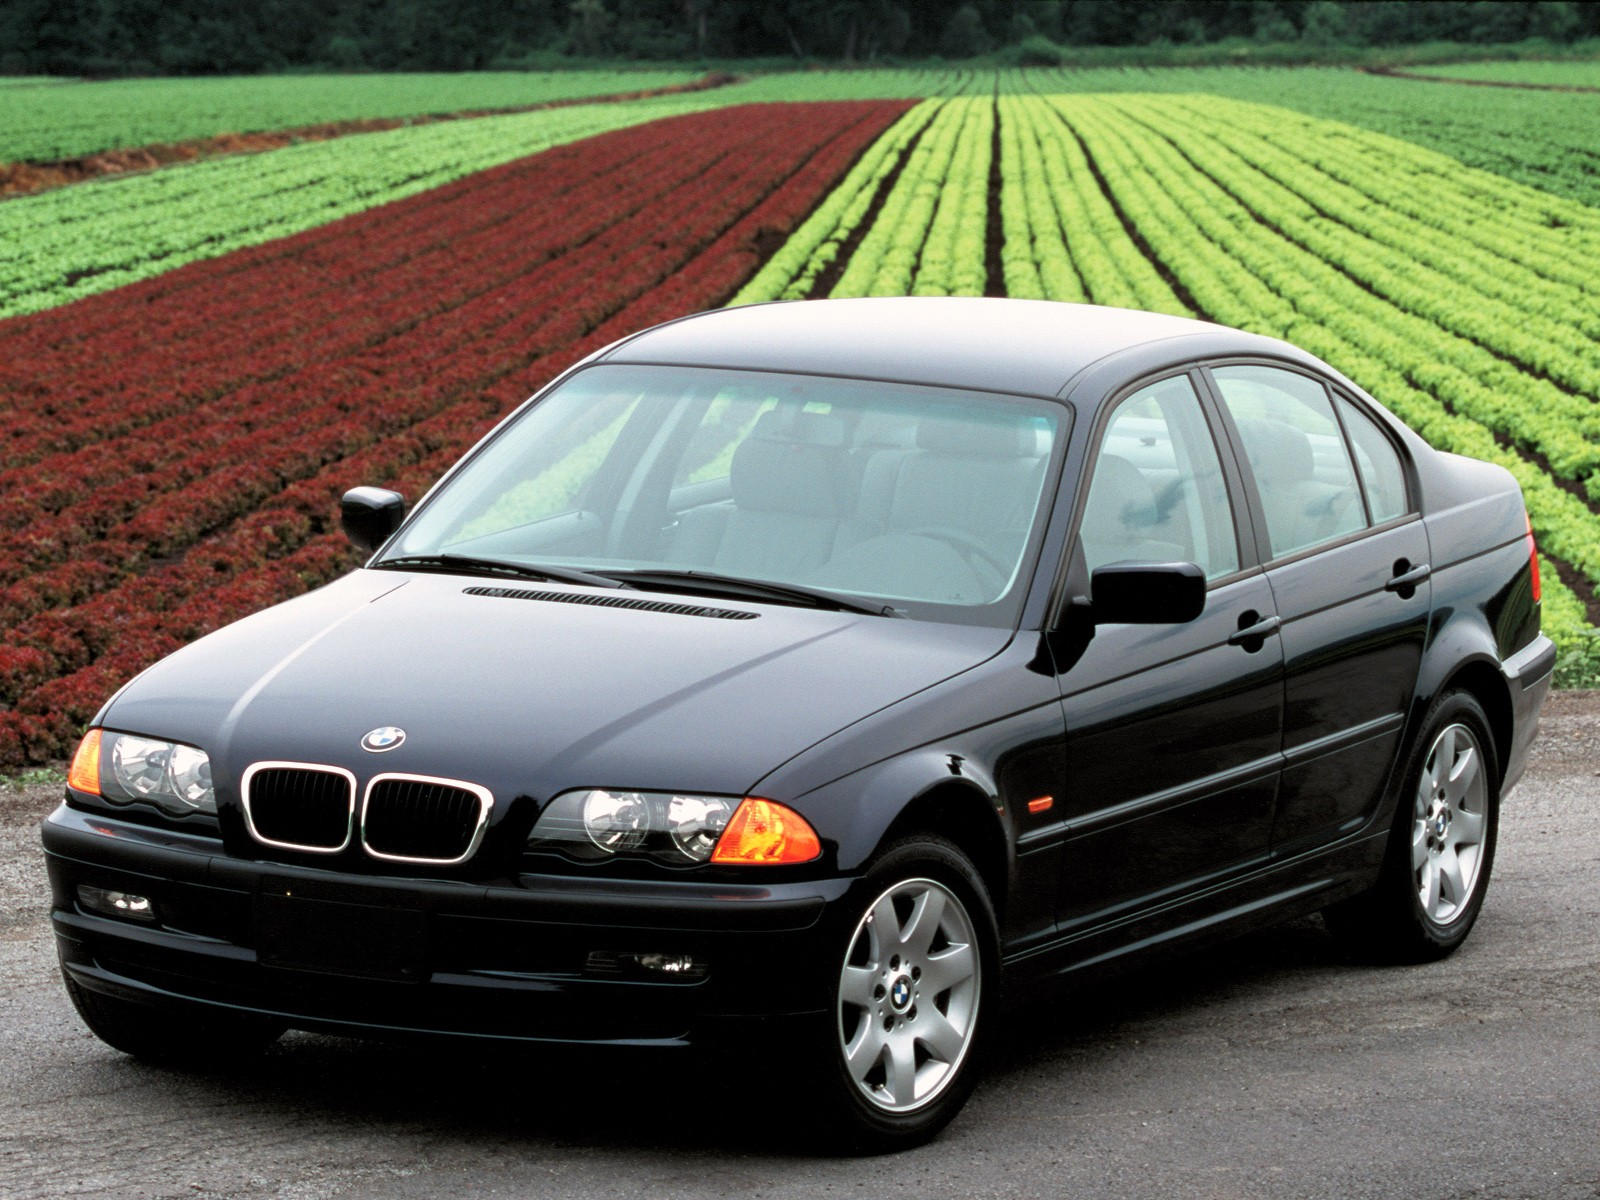 1998 bmw 318i engines with Bmw 3 Series E46 1998 on 2012 Cadillac Srx Electrical Wiring Diagram further NZ6d 6518 as well Bmw 3 Series Sedan E36 1991 additionally Bmw 3 Series E46 1998 together with P 7286 Intake Rubber Boot From Throttle Body To Manifold E36 318i 96 98 Z3 19.